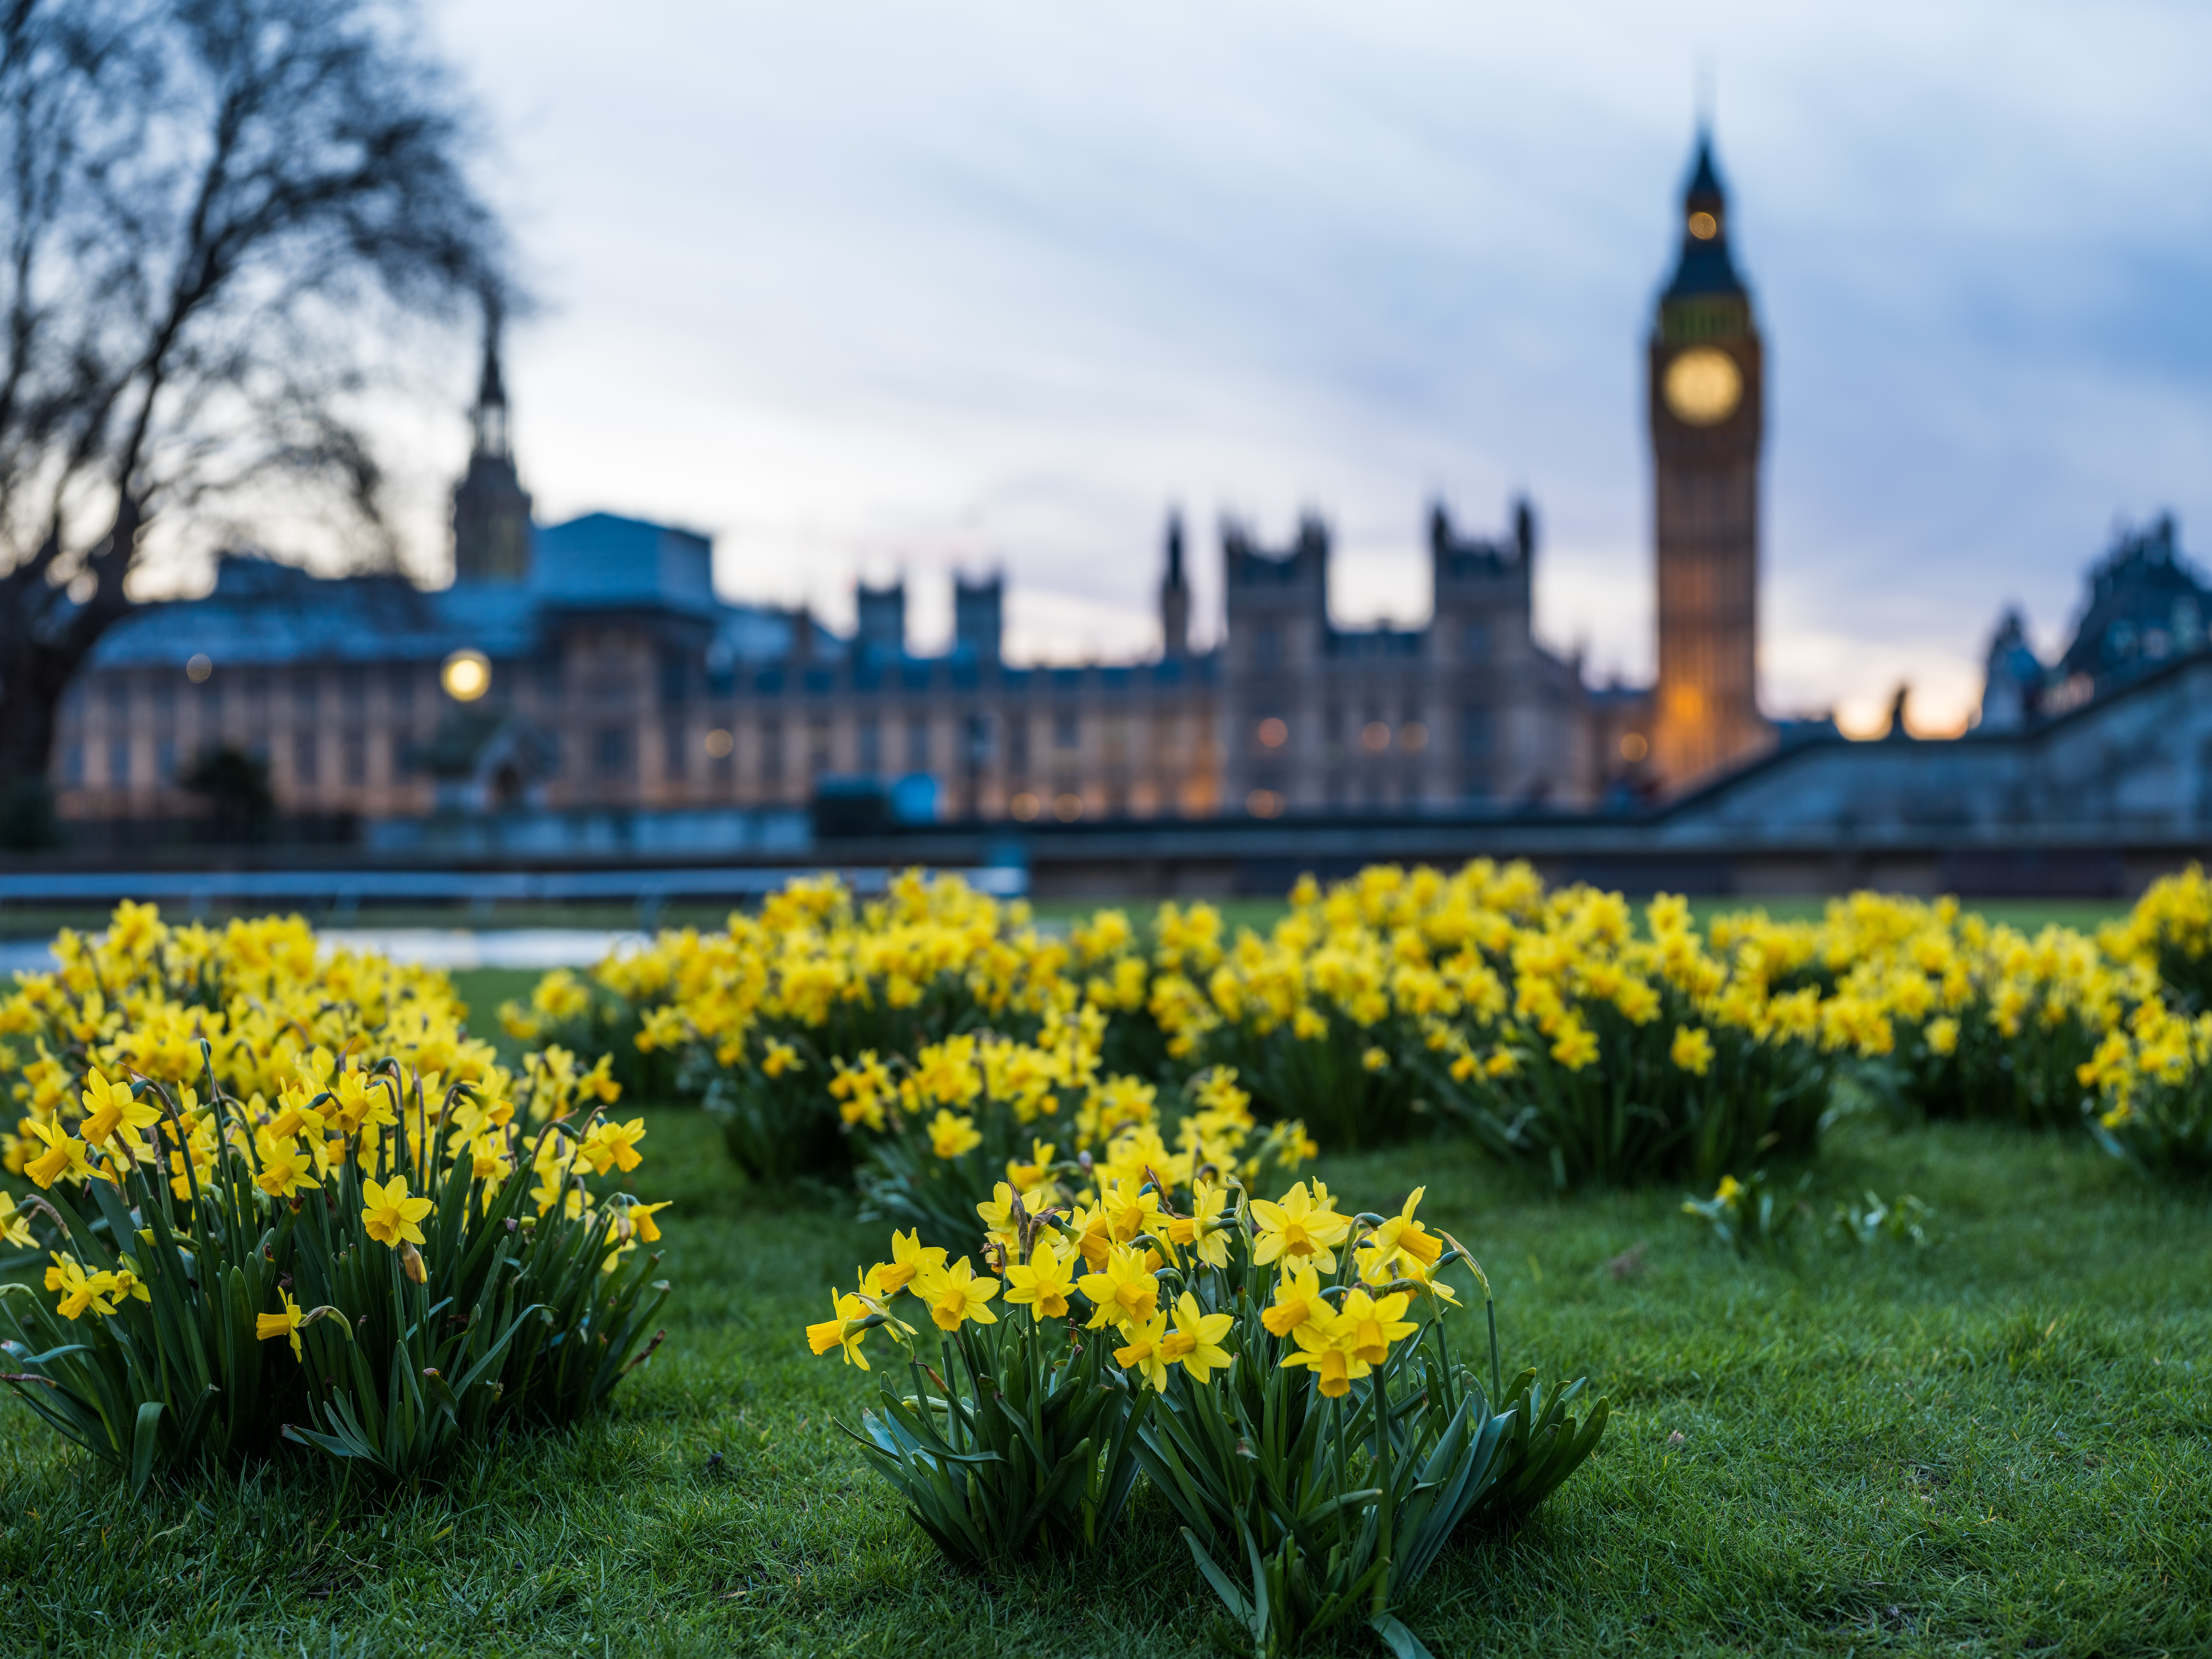 Daffodils and grass with a view of parliament and Big Ben in the distance